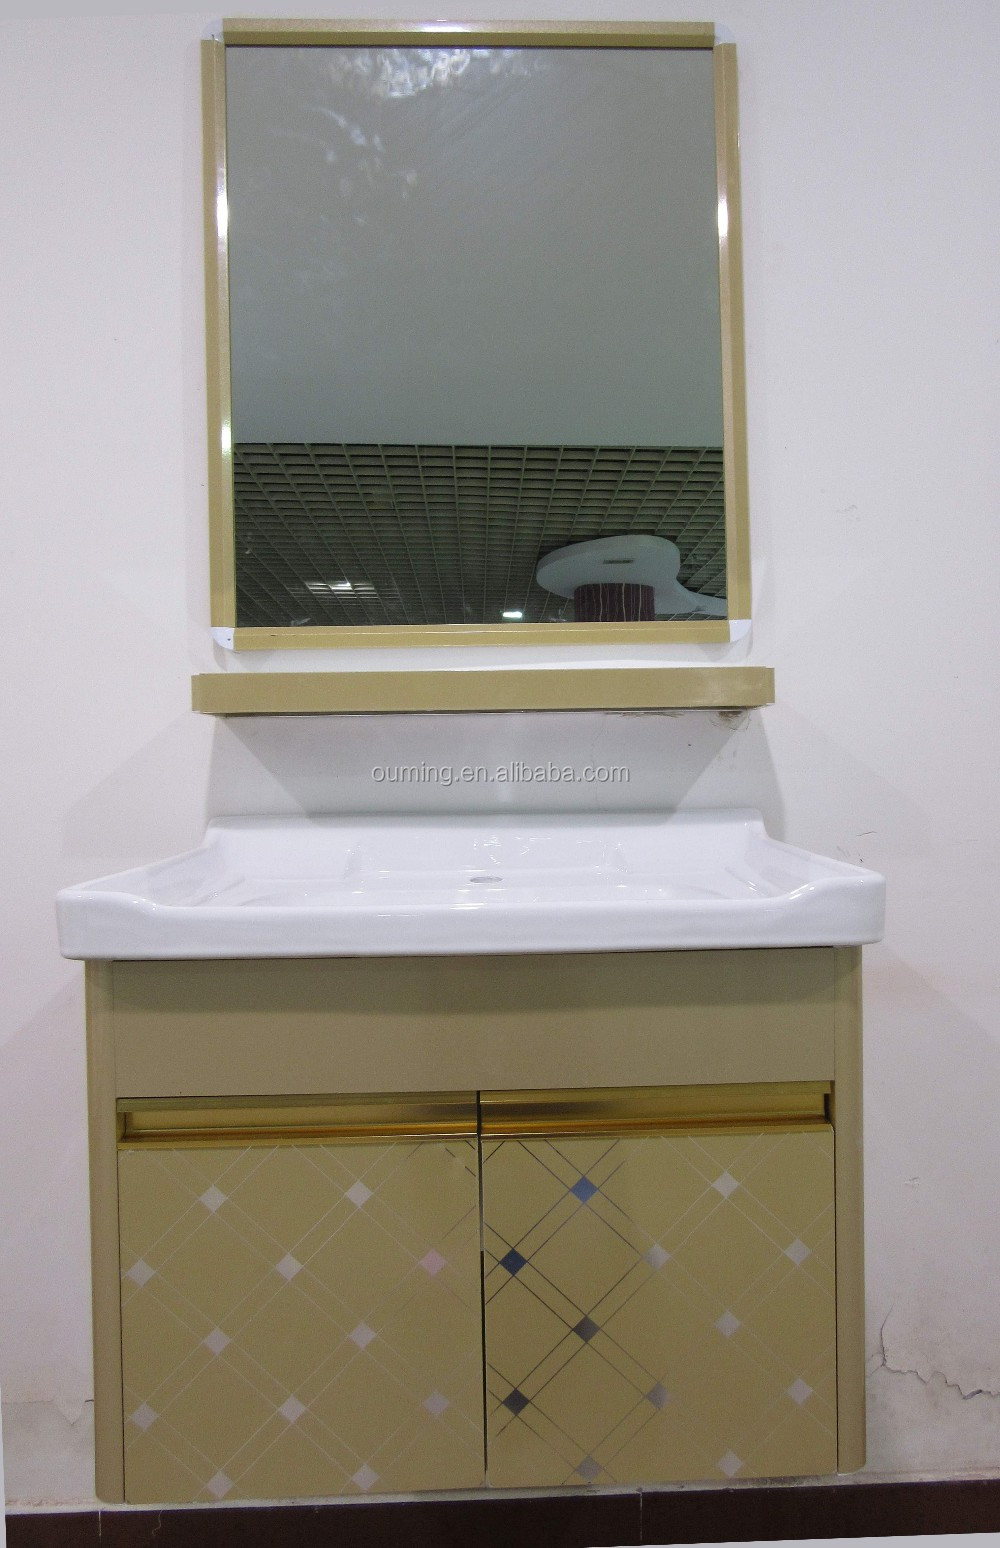 Used Bathroom Vanity Cabinets Hotel Cabinets Hotel Cabinets Suppliers And Manufacturers At